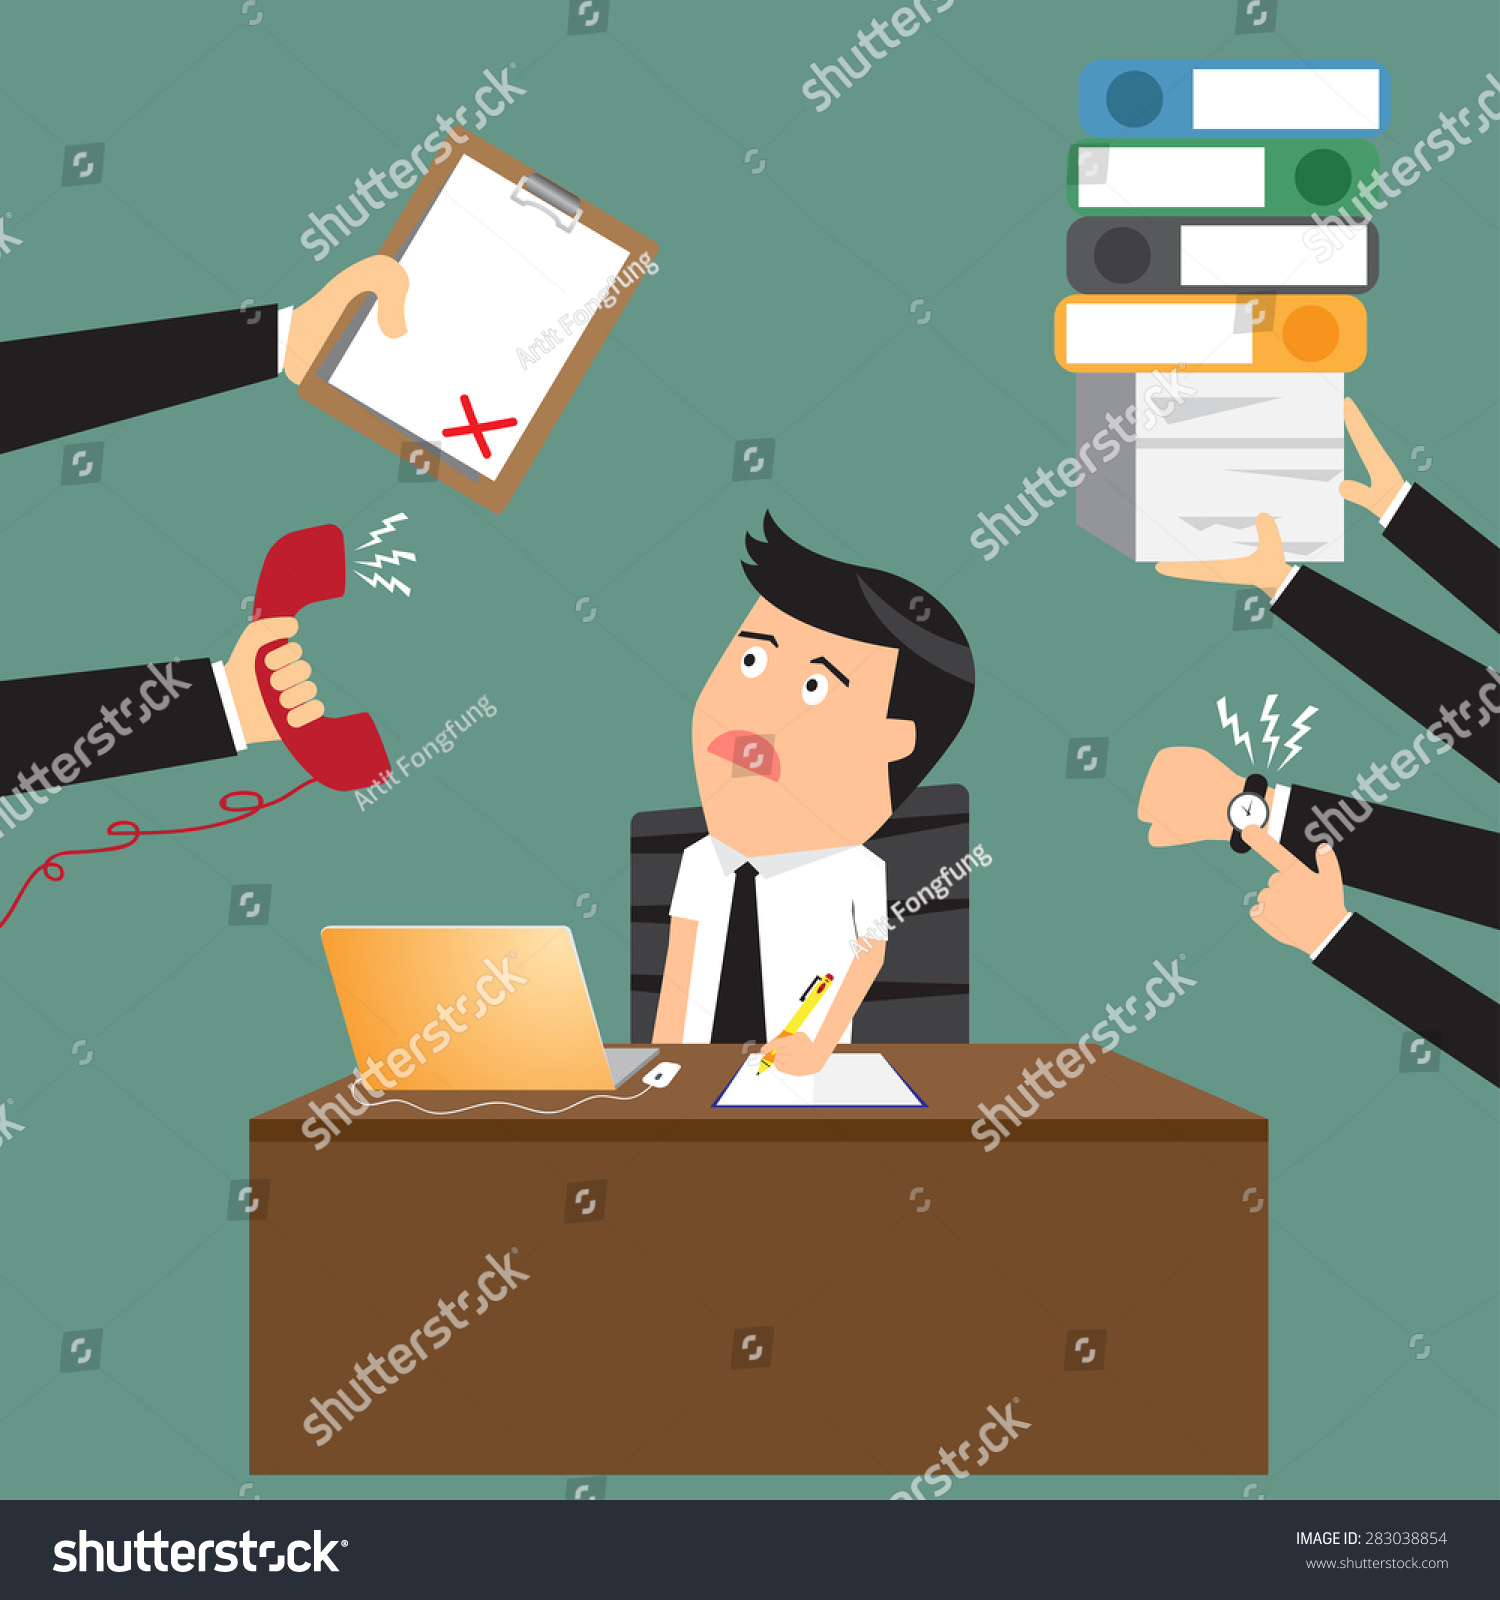 Stock Vector Worried Cartoon Businessman With Phone In Hand Has A Lot Of Work And Paperwork Suitable For Time on Flat Design Office Desk